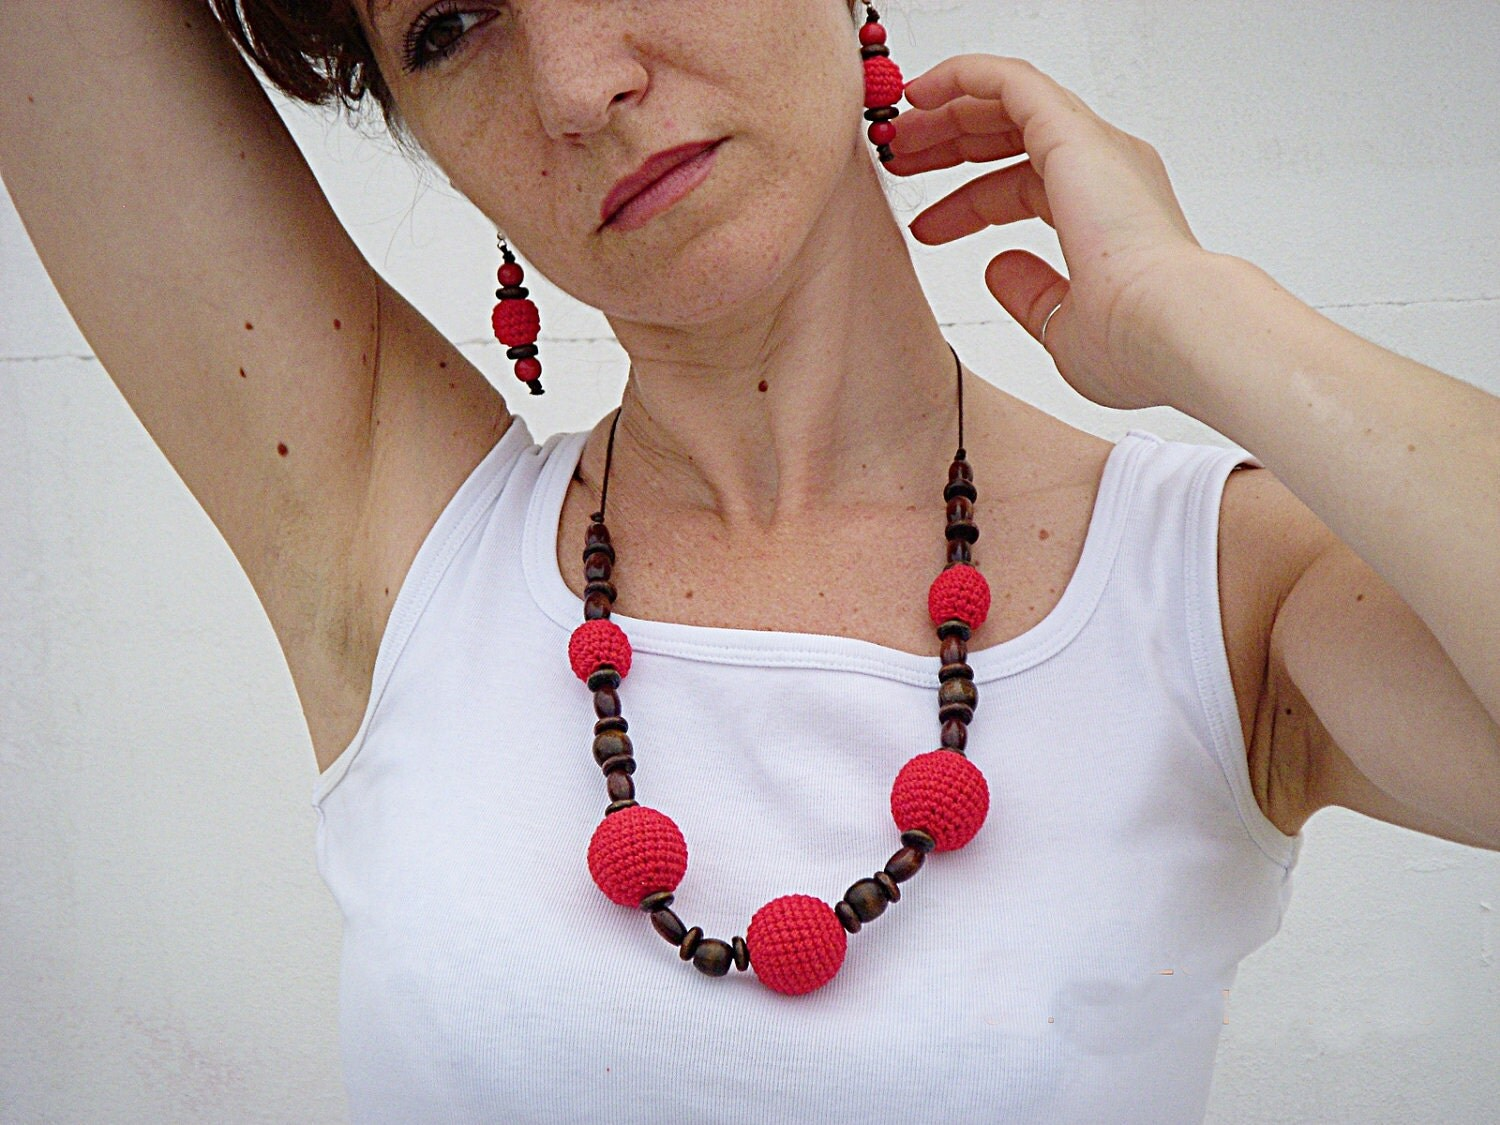 Crocheted necklace in red with  wooden beads - DesireKnitAndCrochet